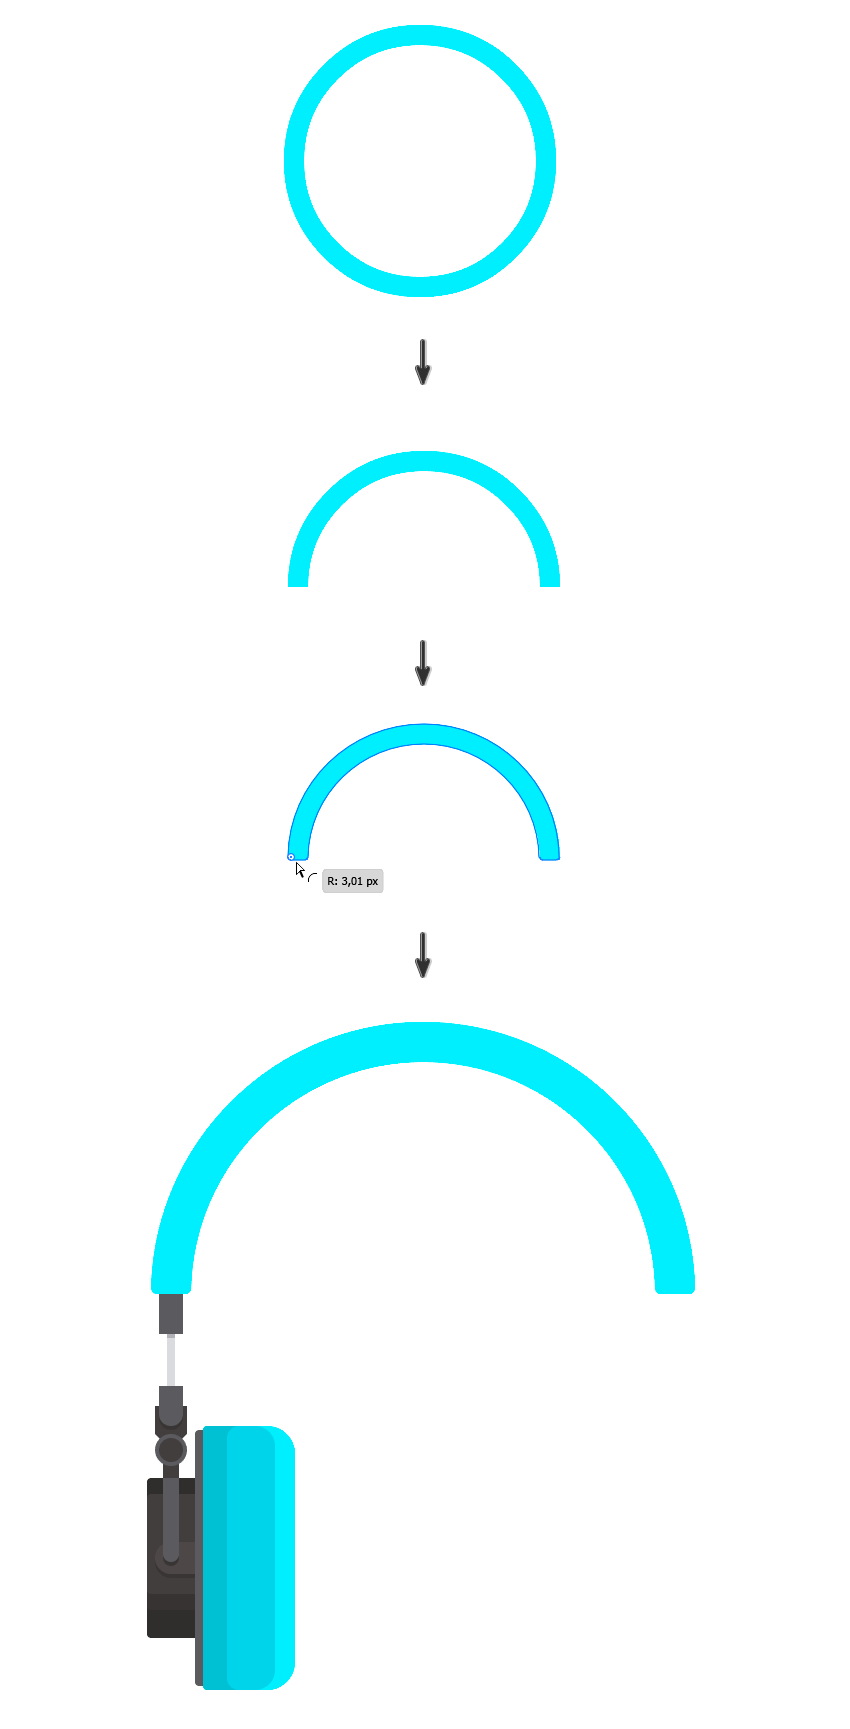 Adding a 252 x 252 px ellipse for the headphones headband